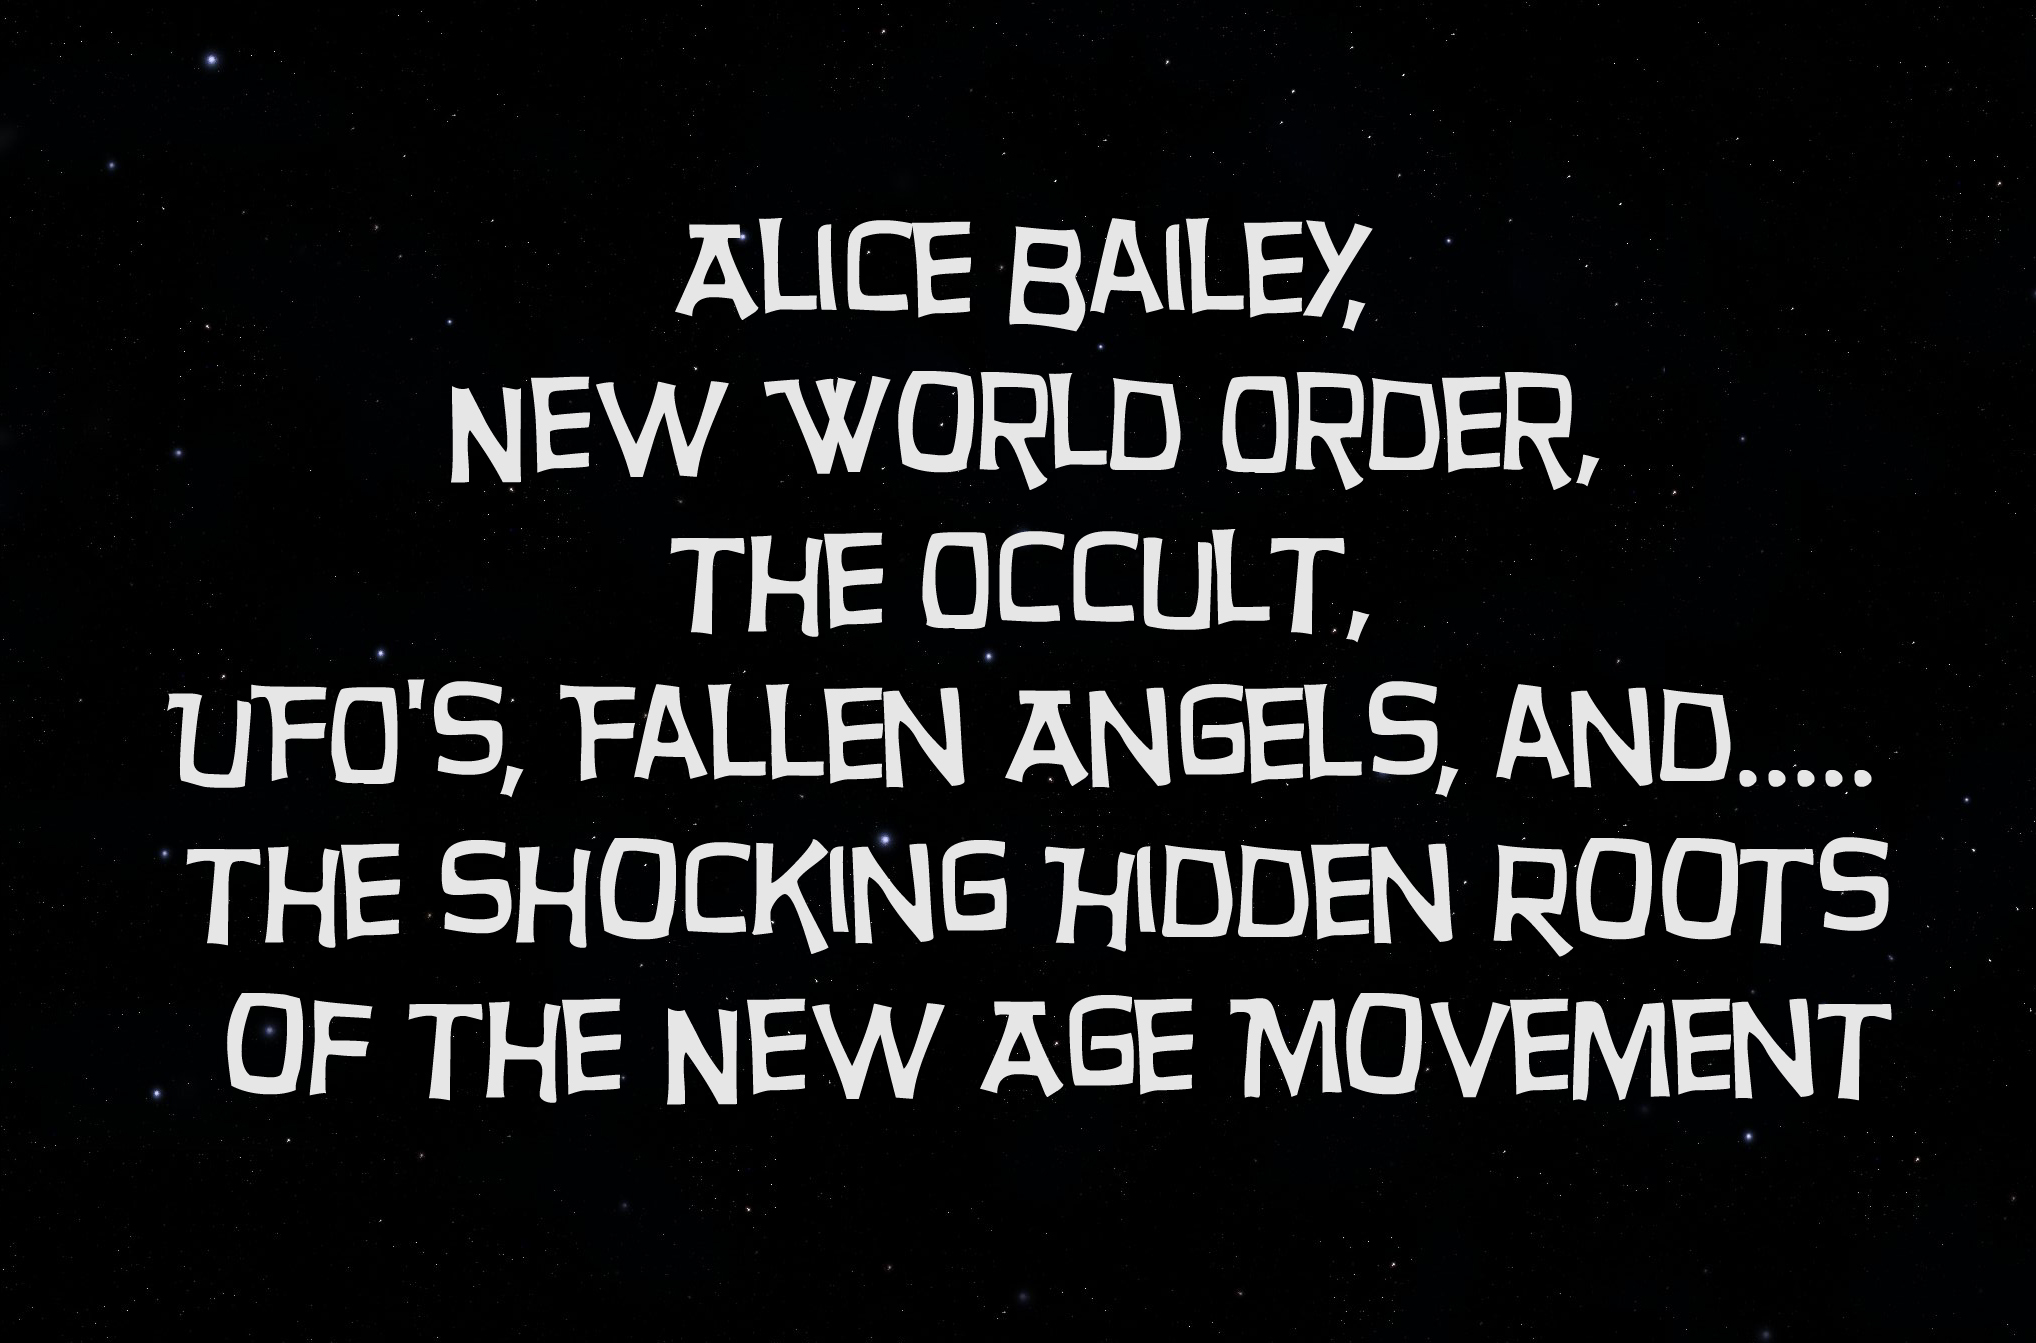 Alice Bailey, The New World Order, The Occult, UFO's, Fallen Angels and the Shocking Hidden Roots of the New Age Movement